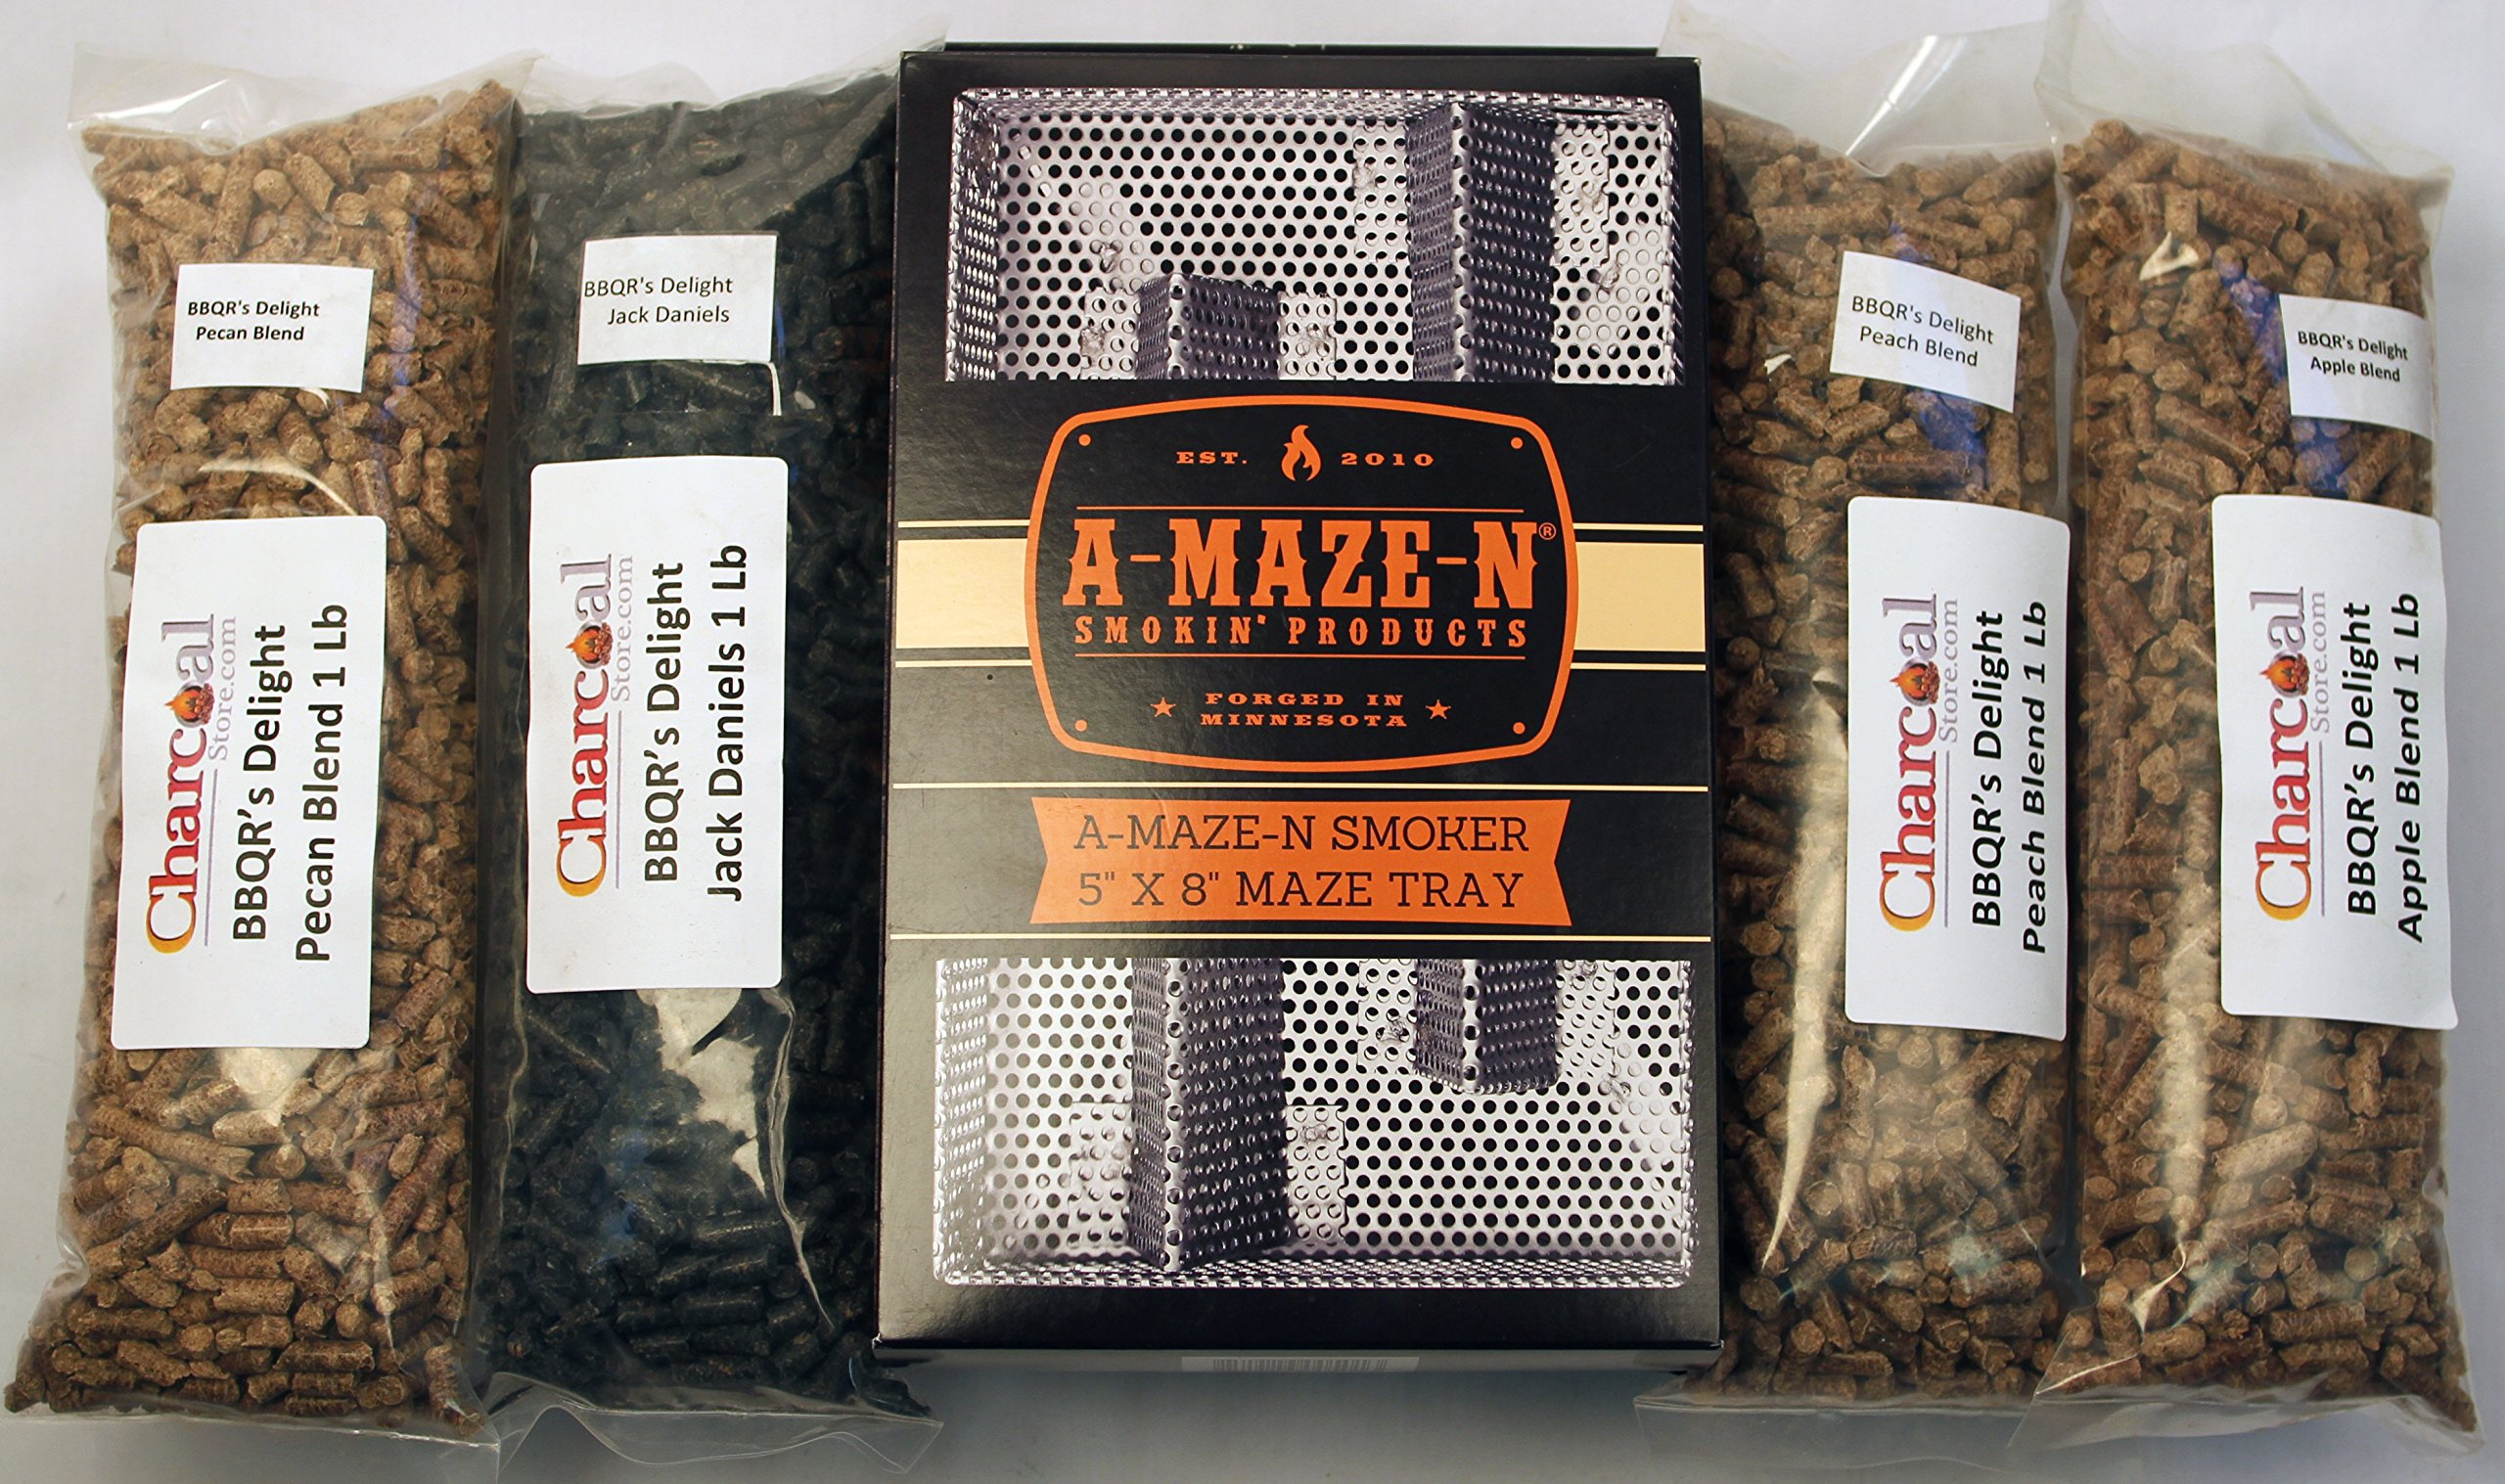 CharcoalStore A-MAZE-N Pellet Smoker 5x8 BBQR's Delight Combo Pack Includes 1 Lb Each of Jack Daniels, Peach, Apple and Pecan Pellets.